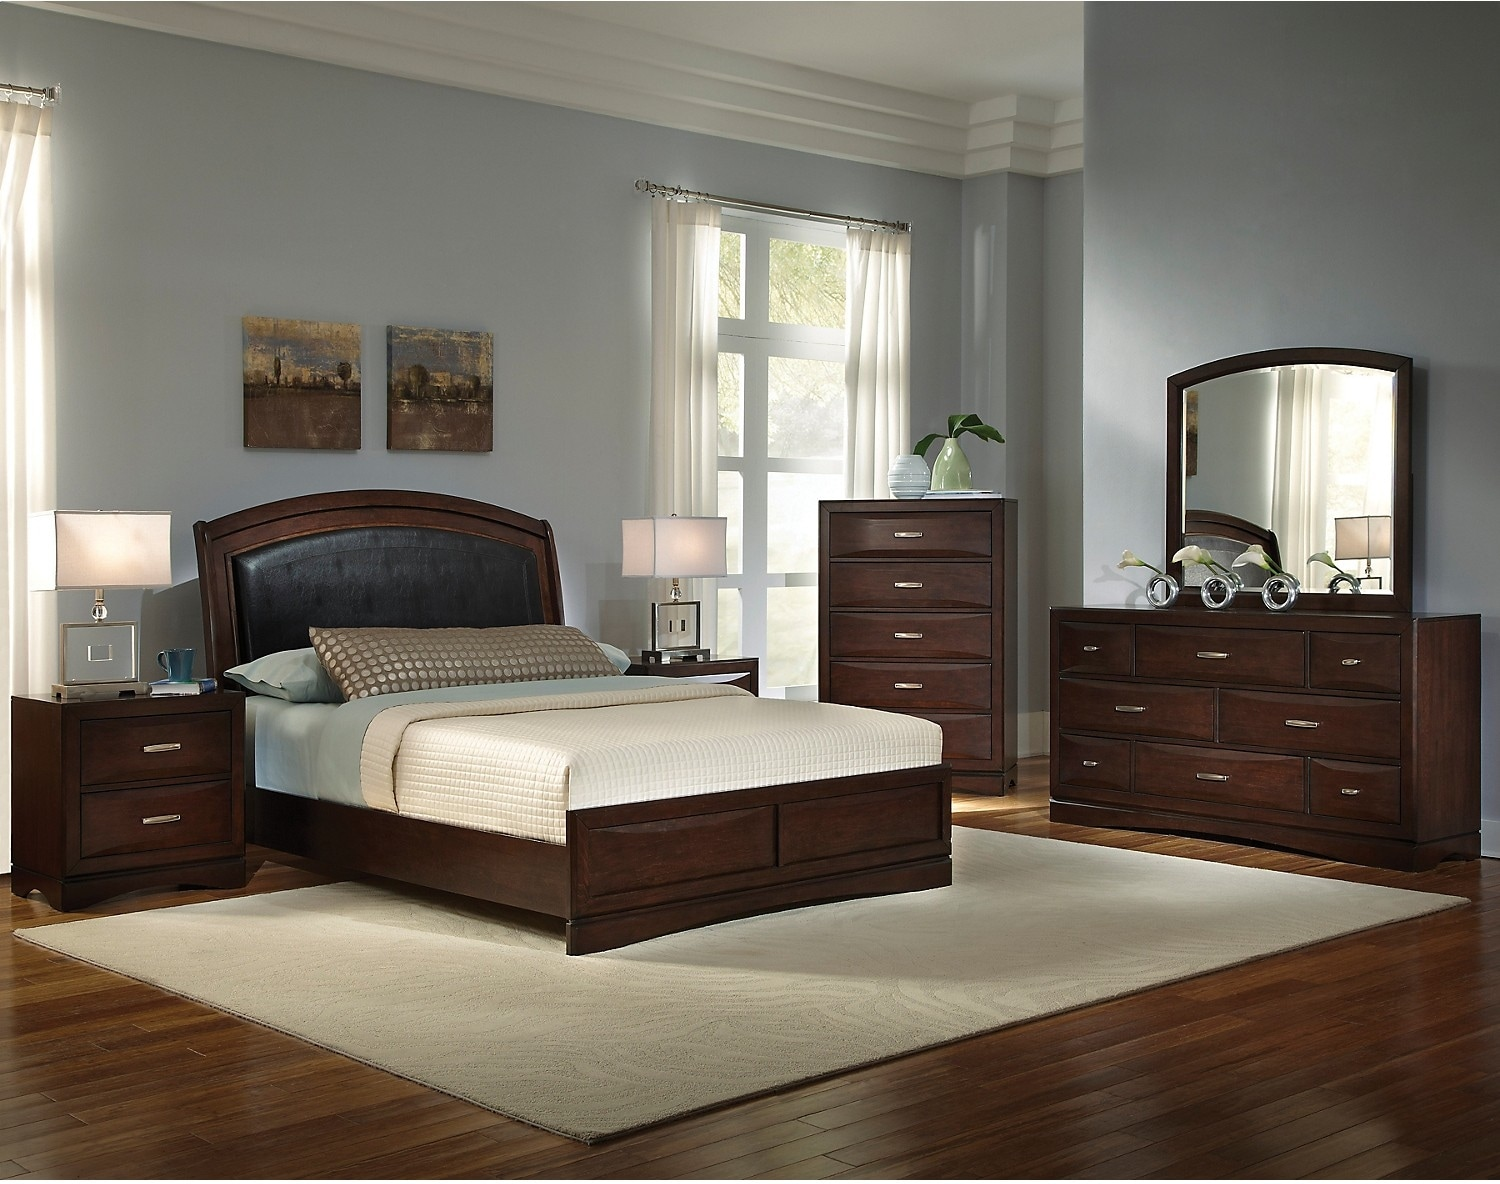 Beverly 8-Piece Queen Bedroom Set